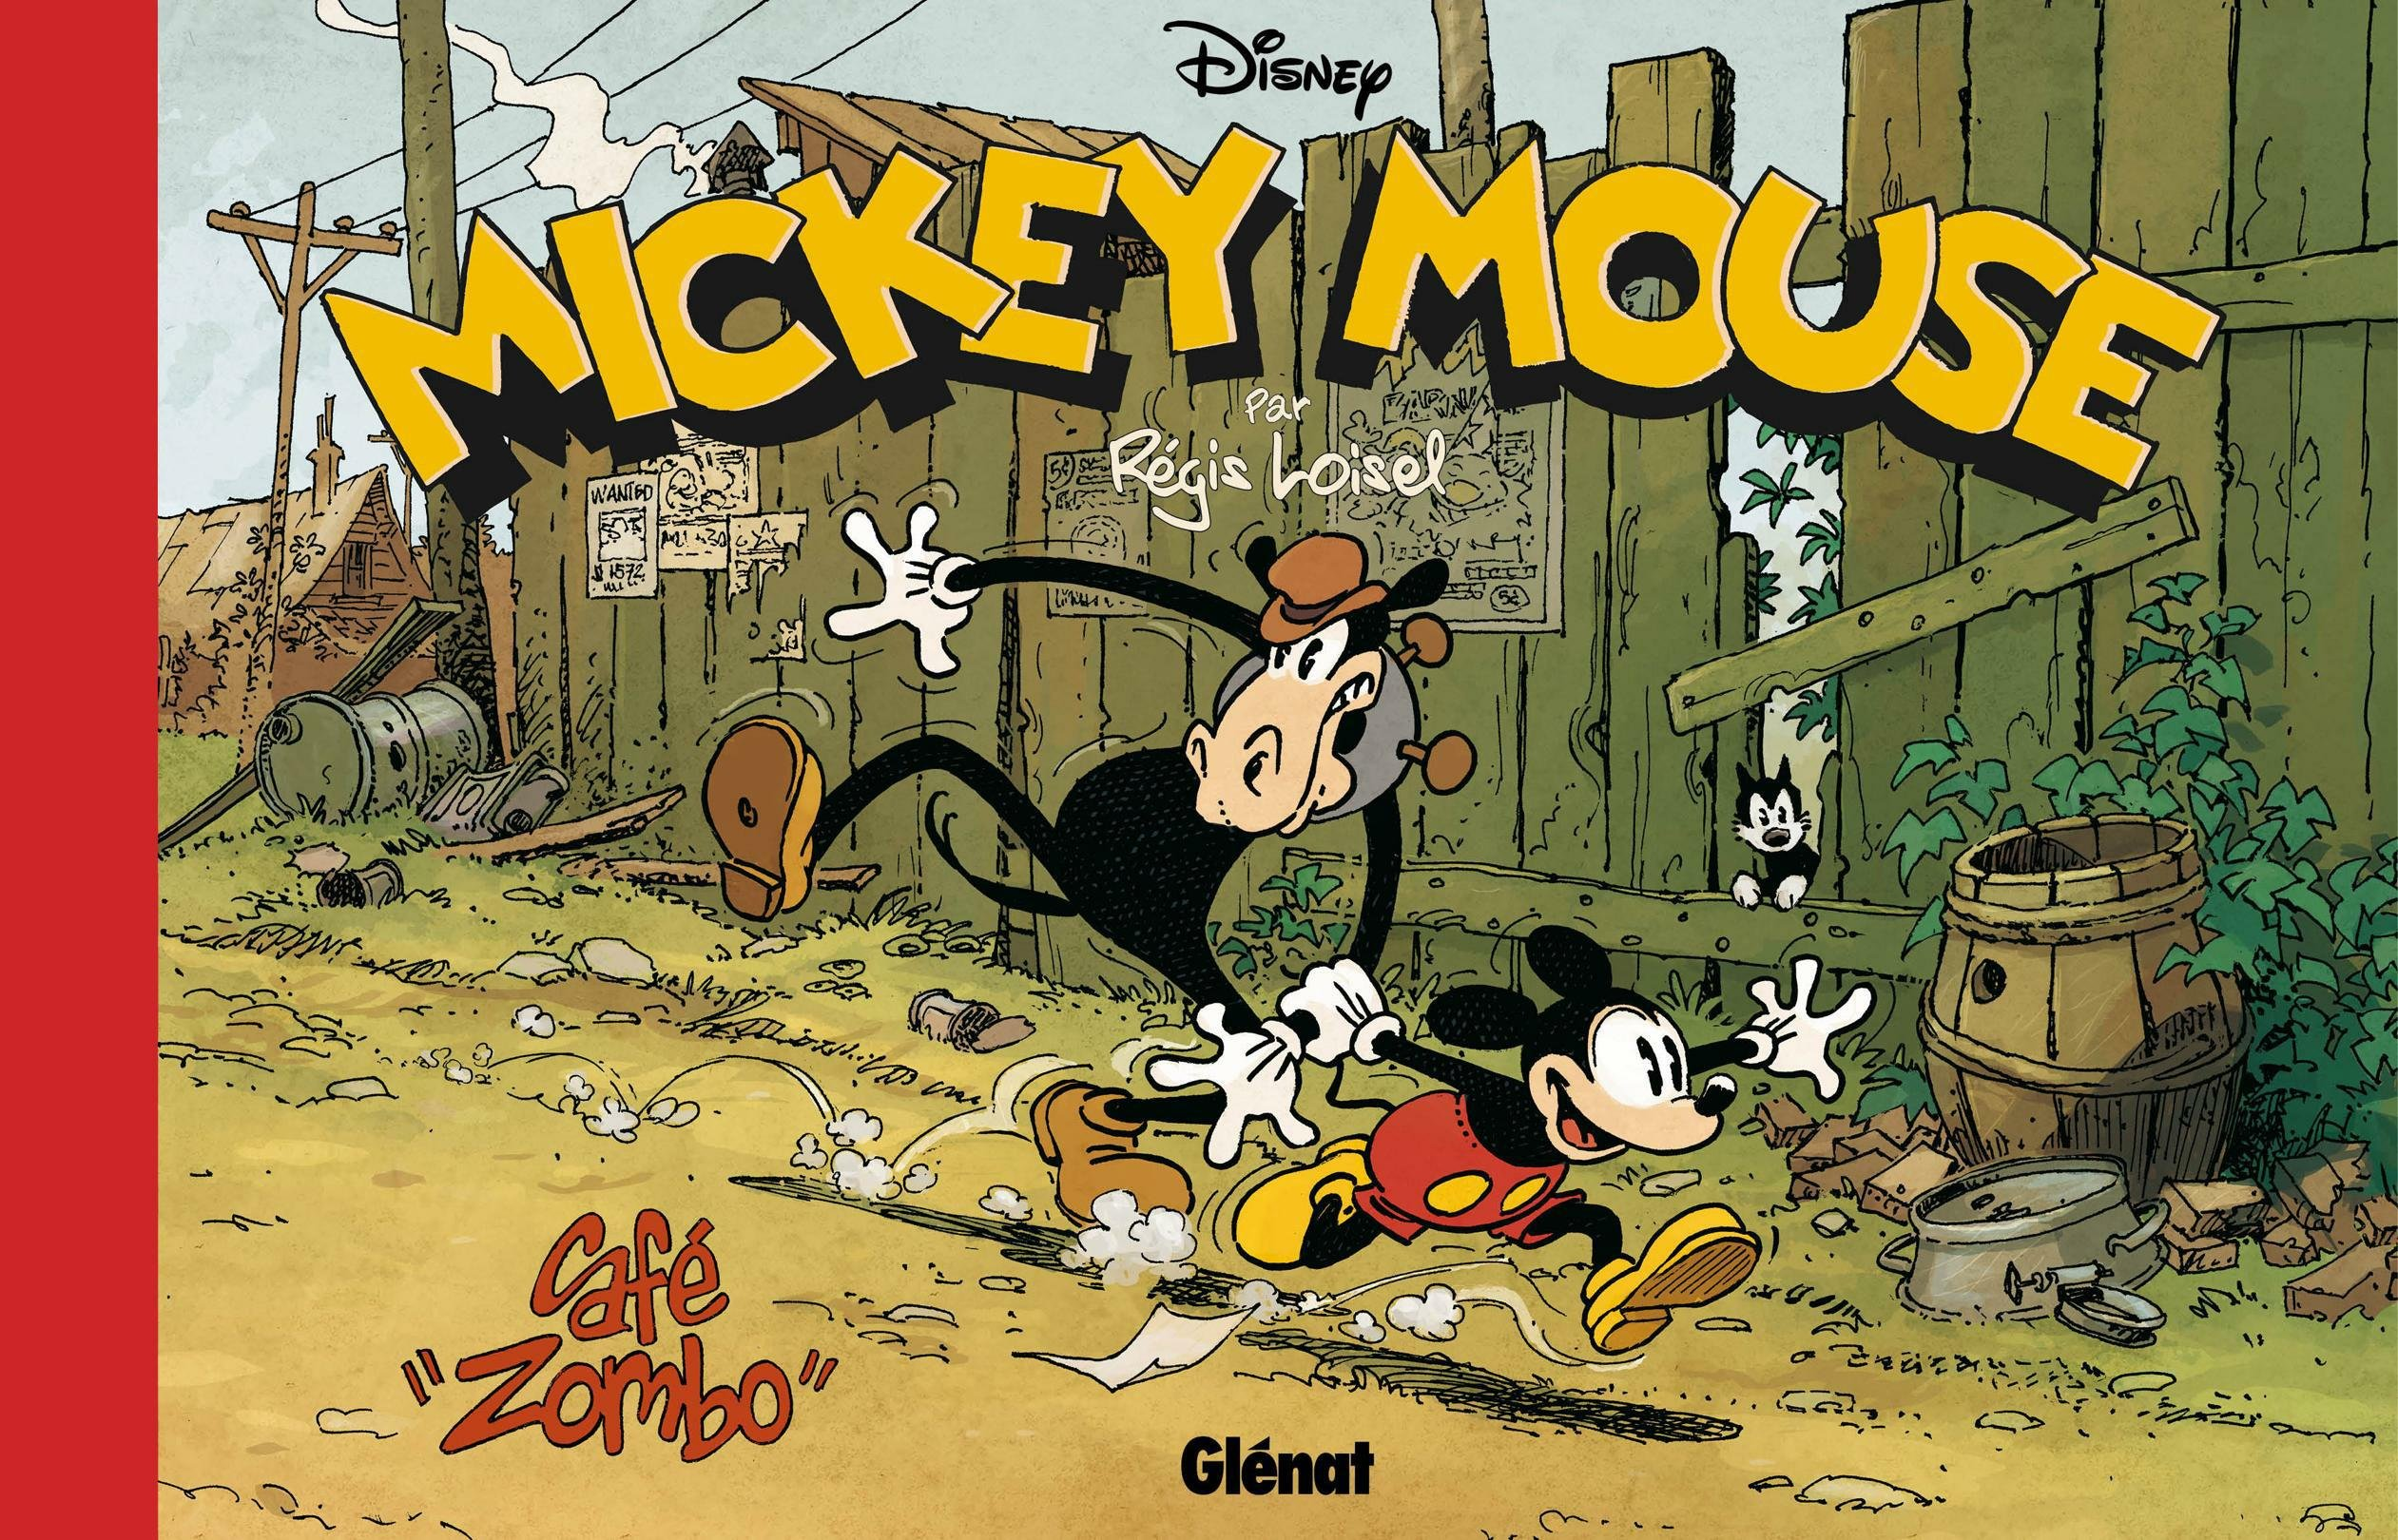 Disney Mickey Mouse Cafe Zombo (French Edition): Régis Loisel ...